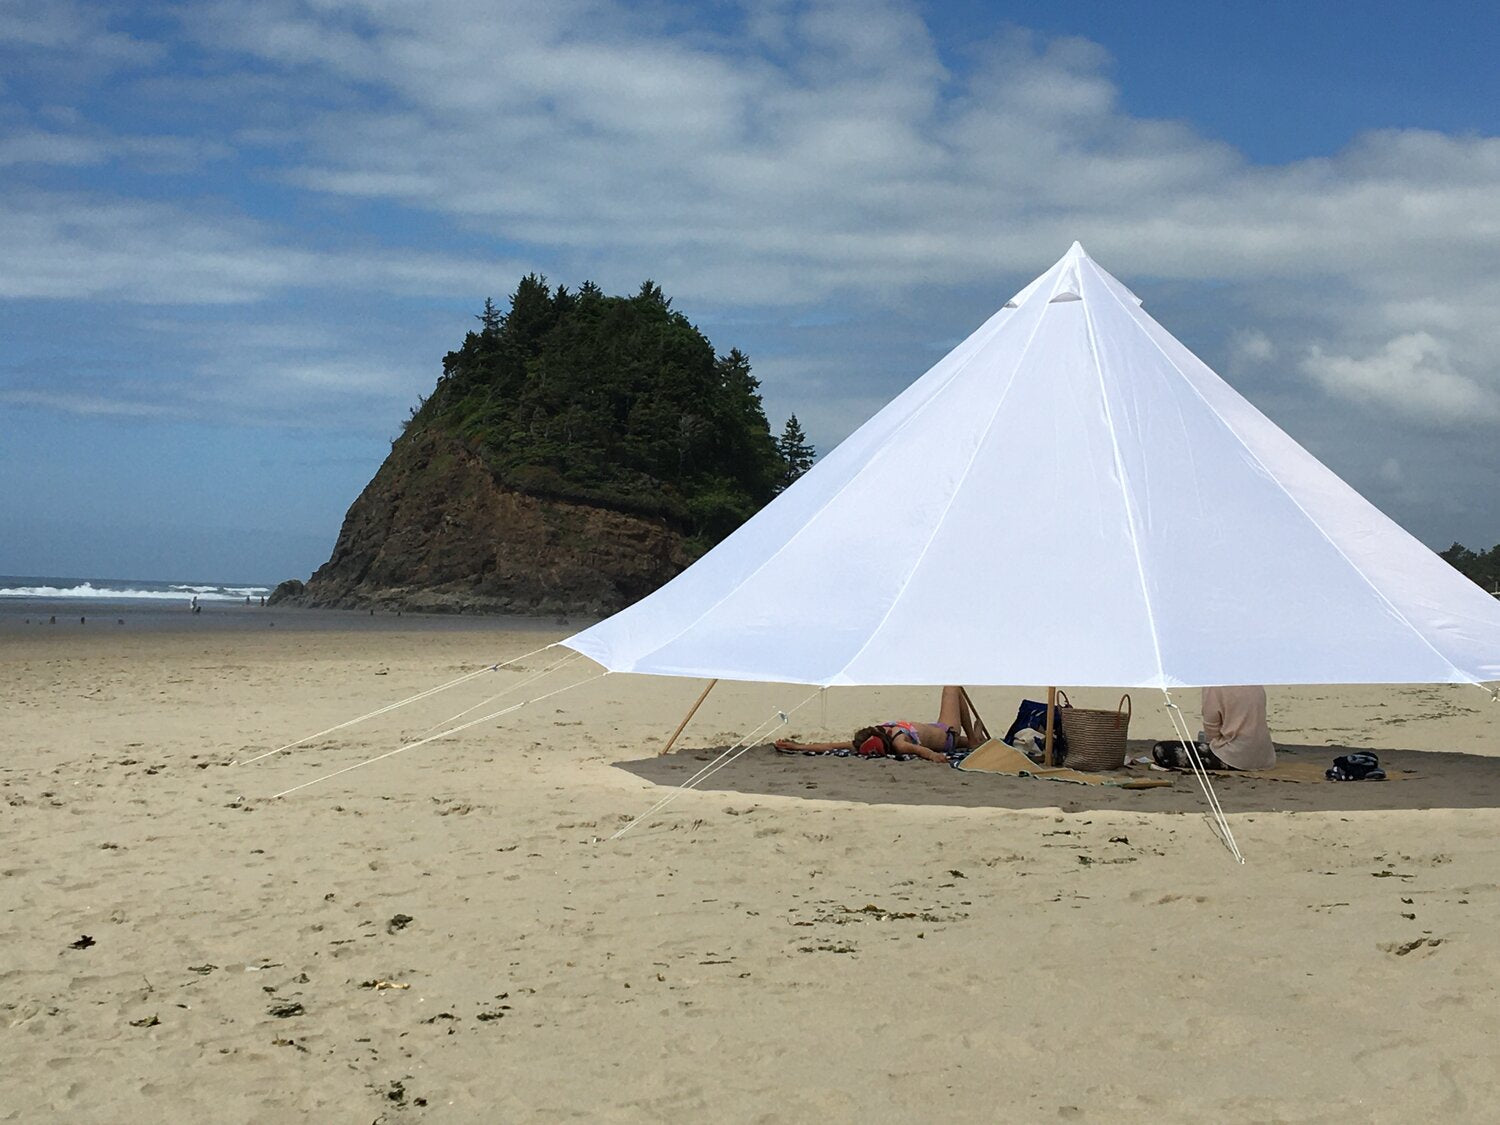 A white shade canopy extends over two people on a beach to keep cool in the shade.